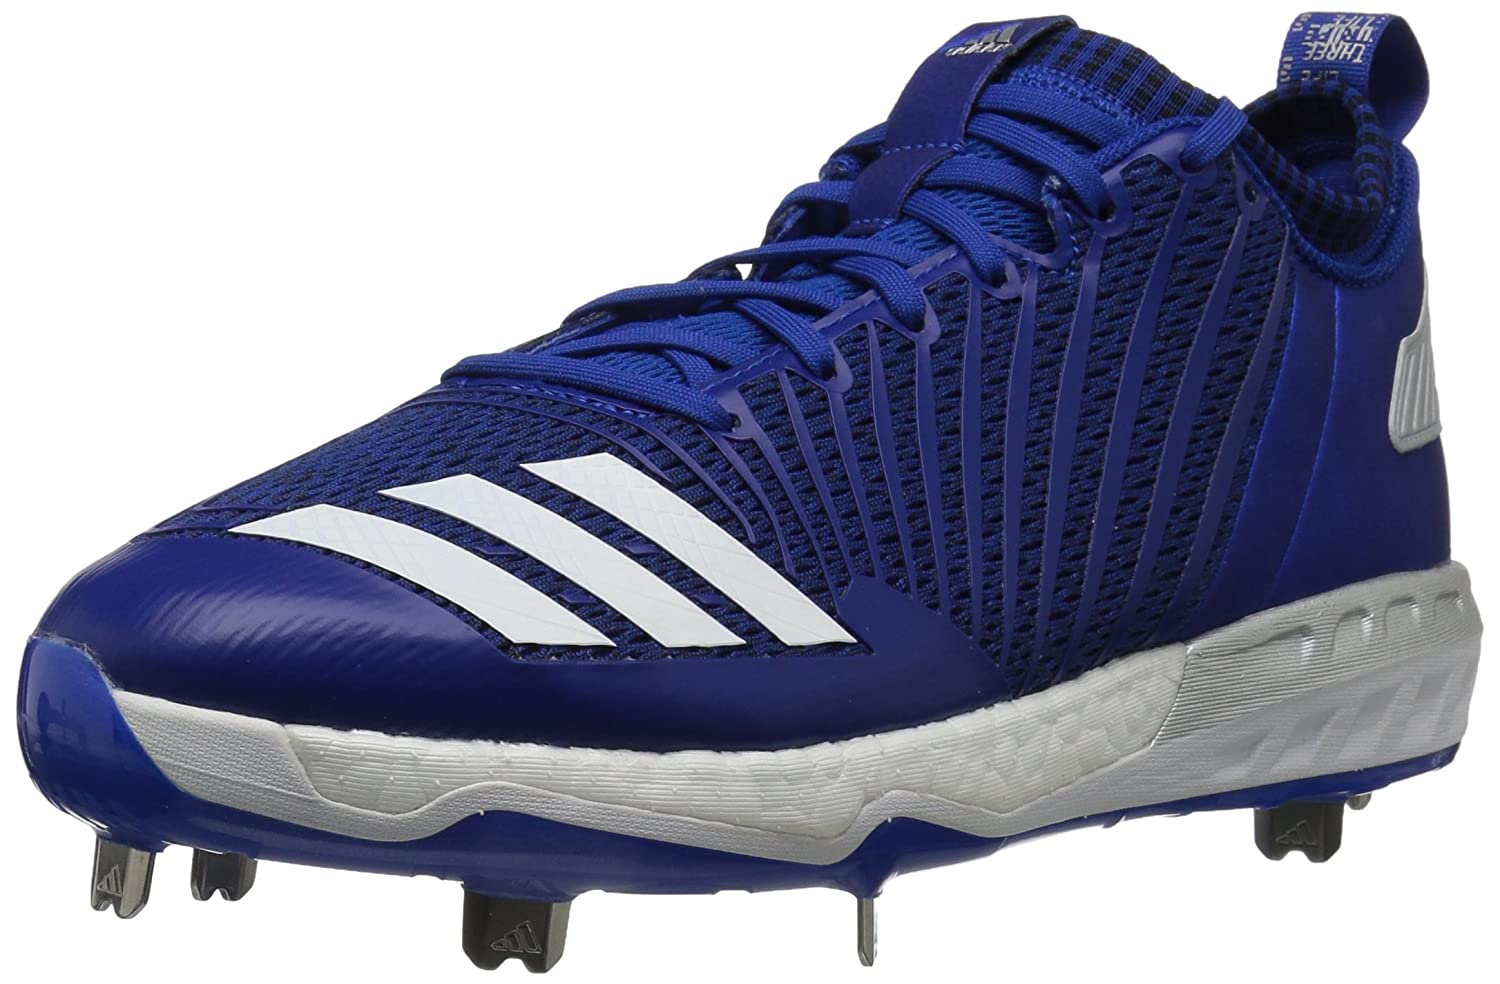 adidas Men's Freak X Carbon Mid Baseball Shoe B01MRZMN3M 7 D(M) US|Collegiate Royal/White/Metallic Silver